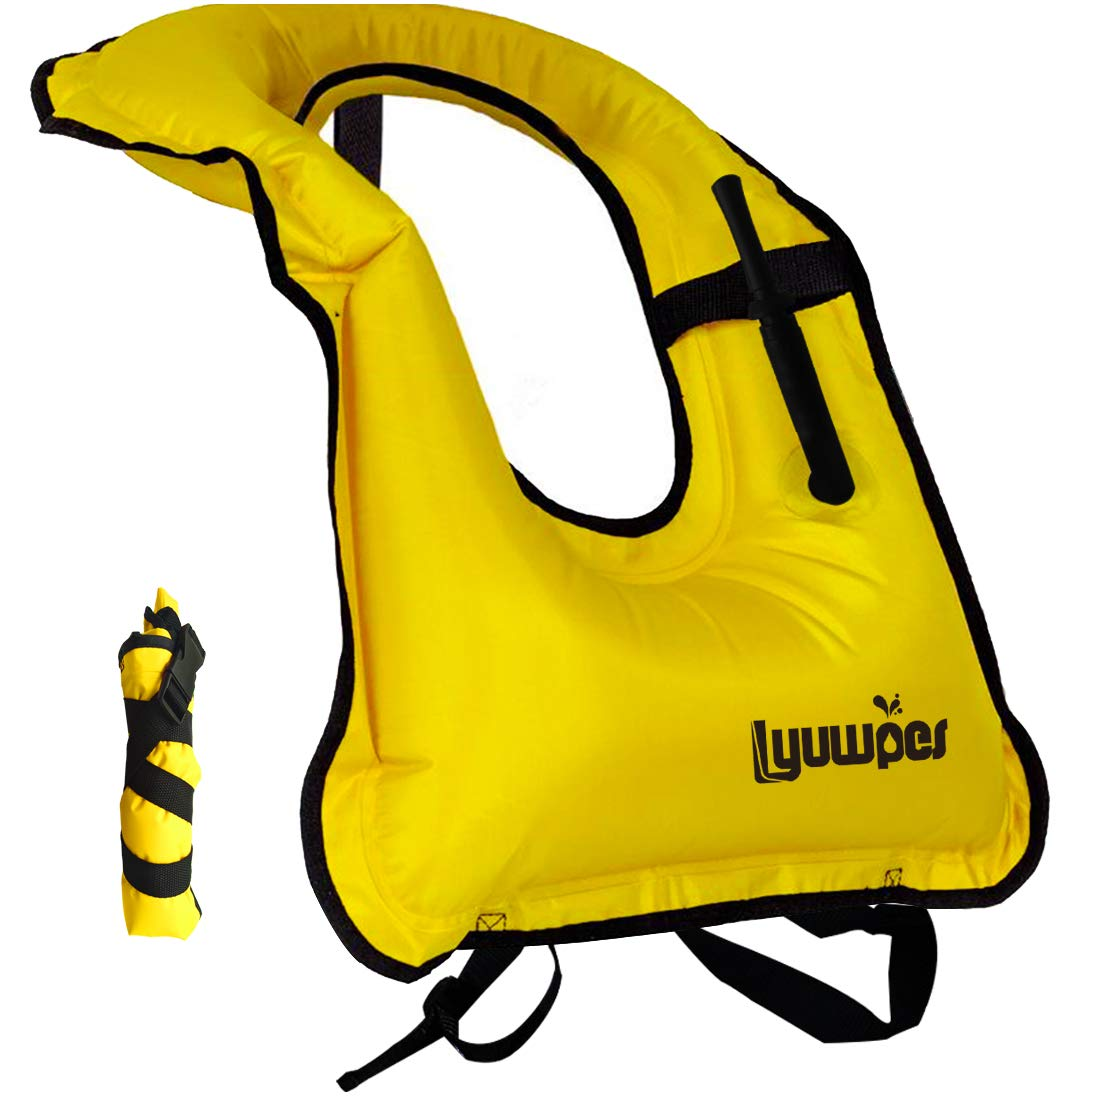 Lyuwpes Inflatable Snorkeling Vest Adult Snorkel Vests Free Diving Safety Jackets Yellow